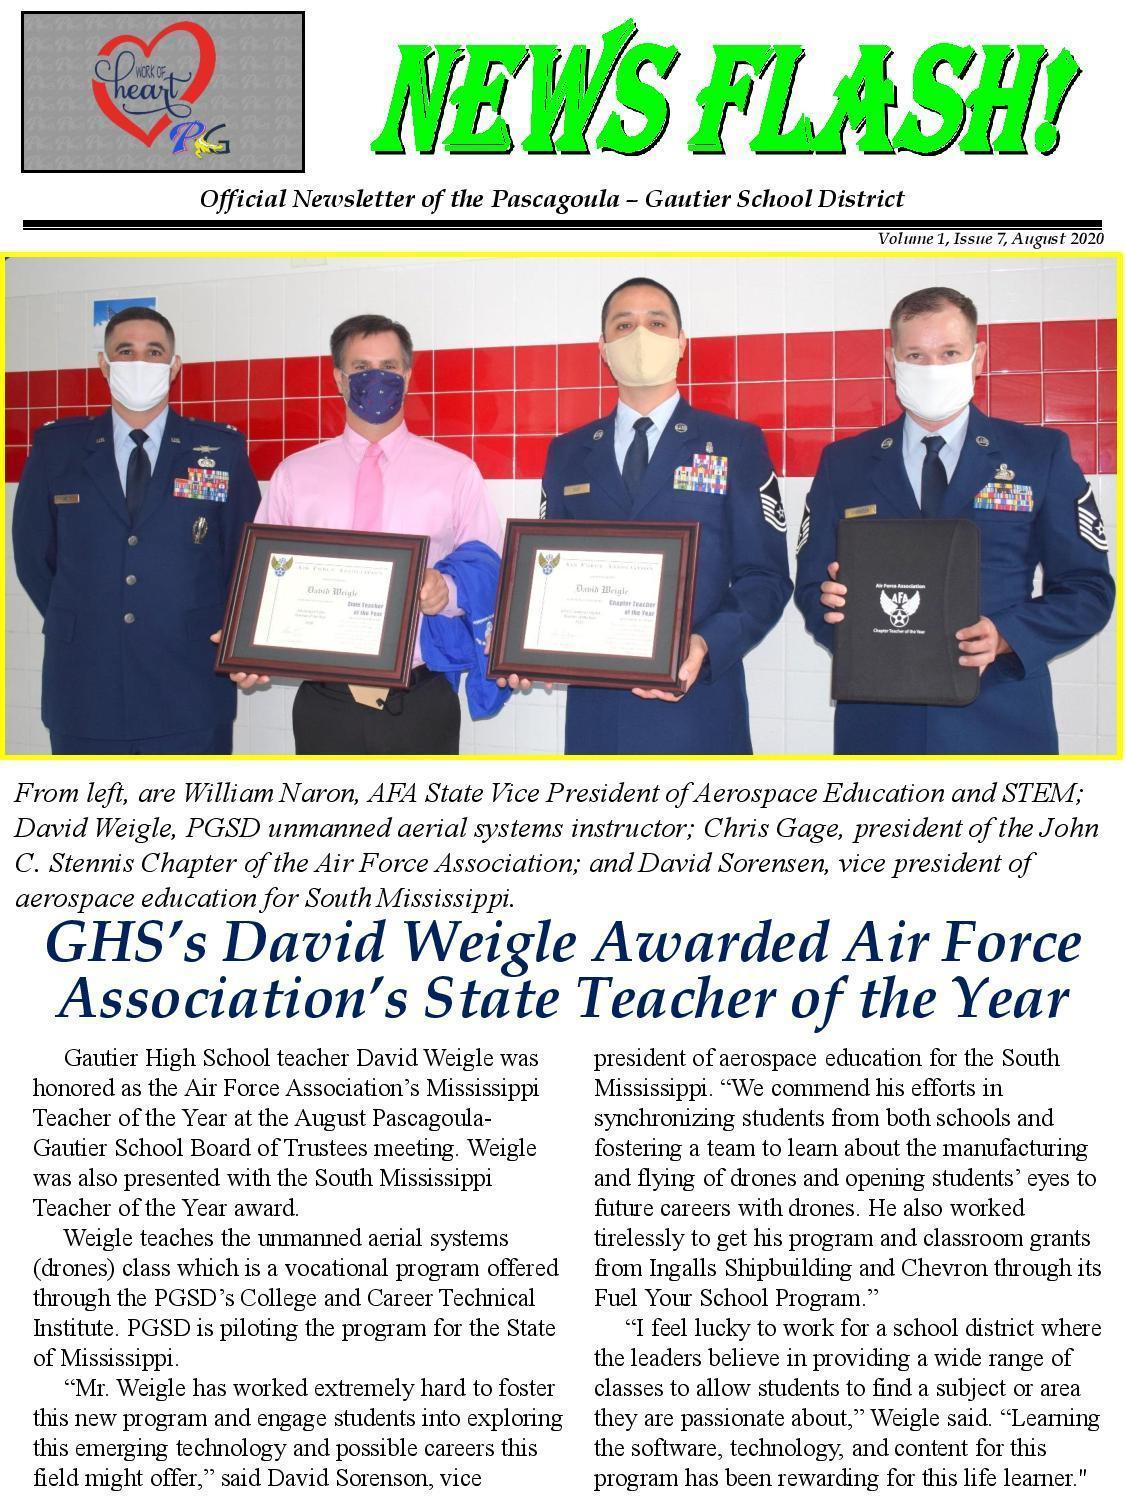 Vol. 1, Issue 7, GHS David Weigle Teacher of the Year